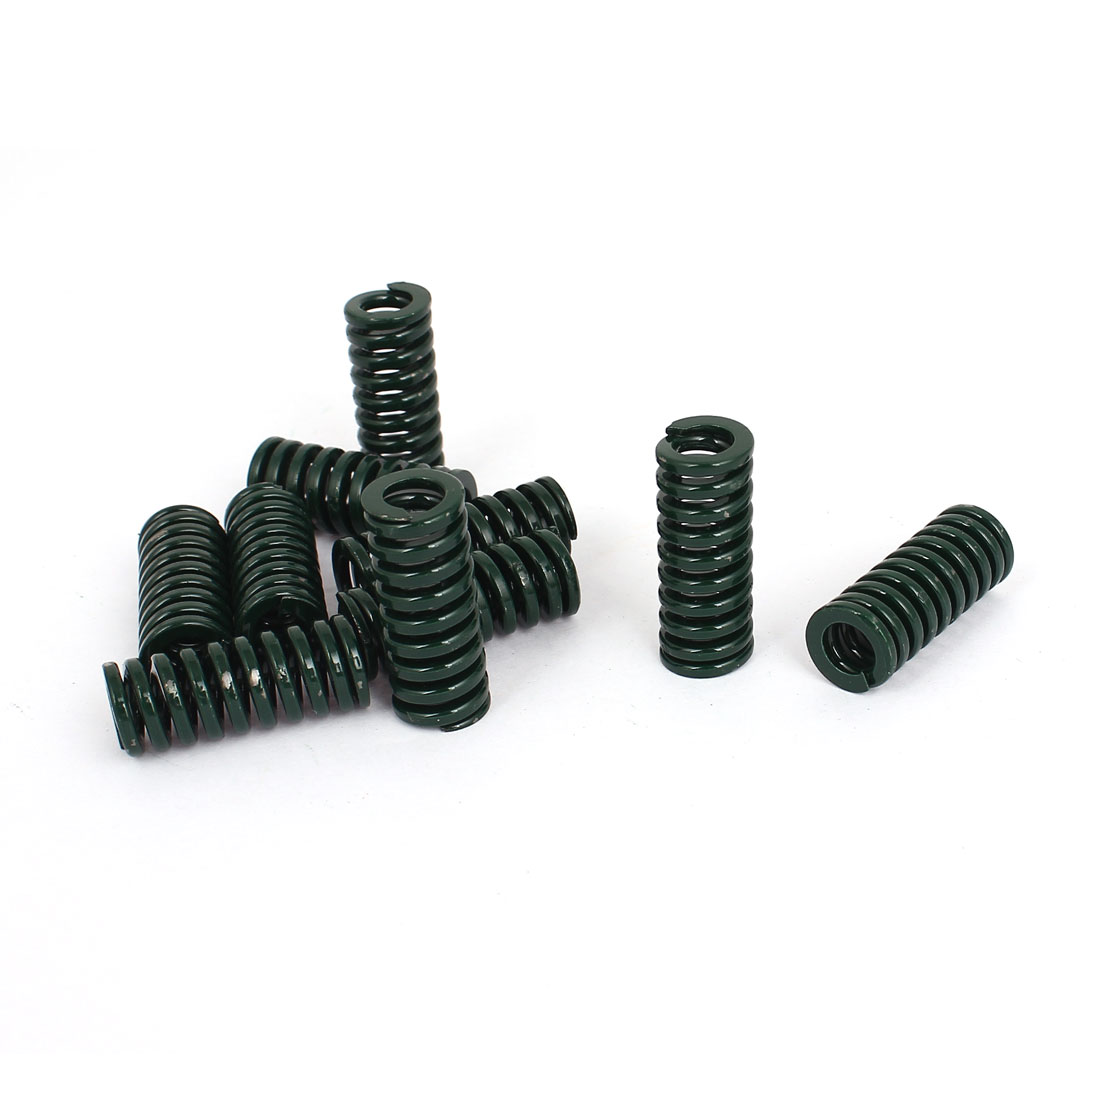 12mm OD 30mm Long Heavy Load Stamping Compression Mold Die Spring Green 10pcs